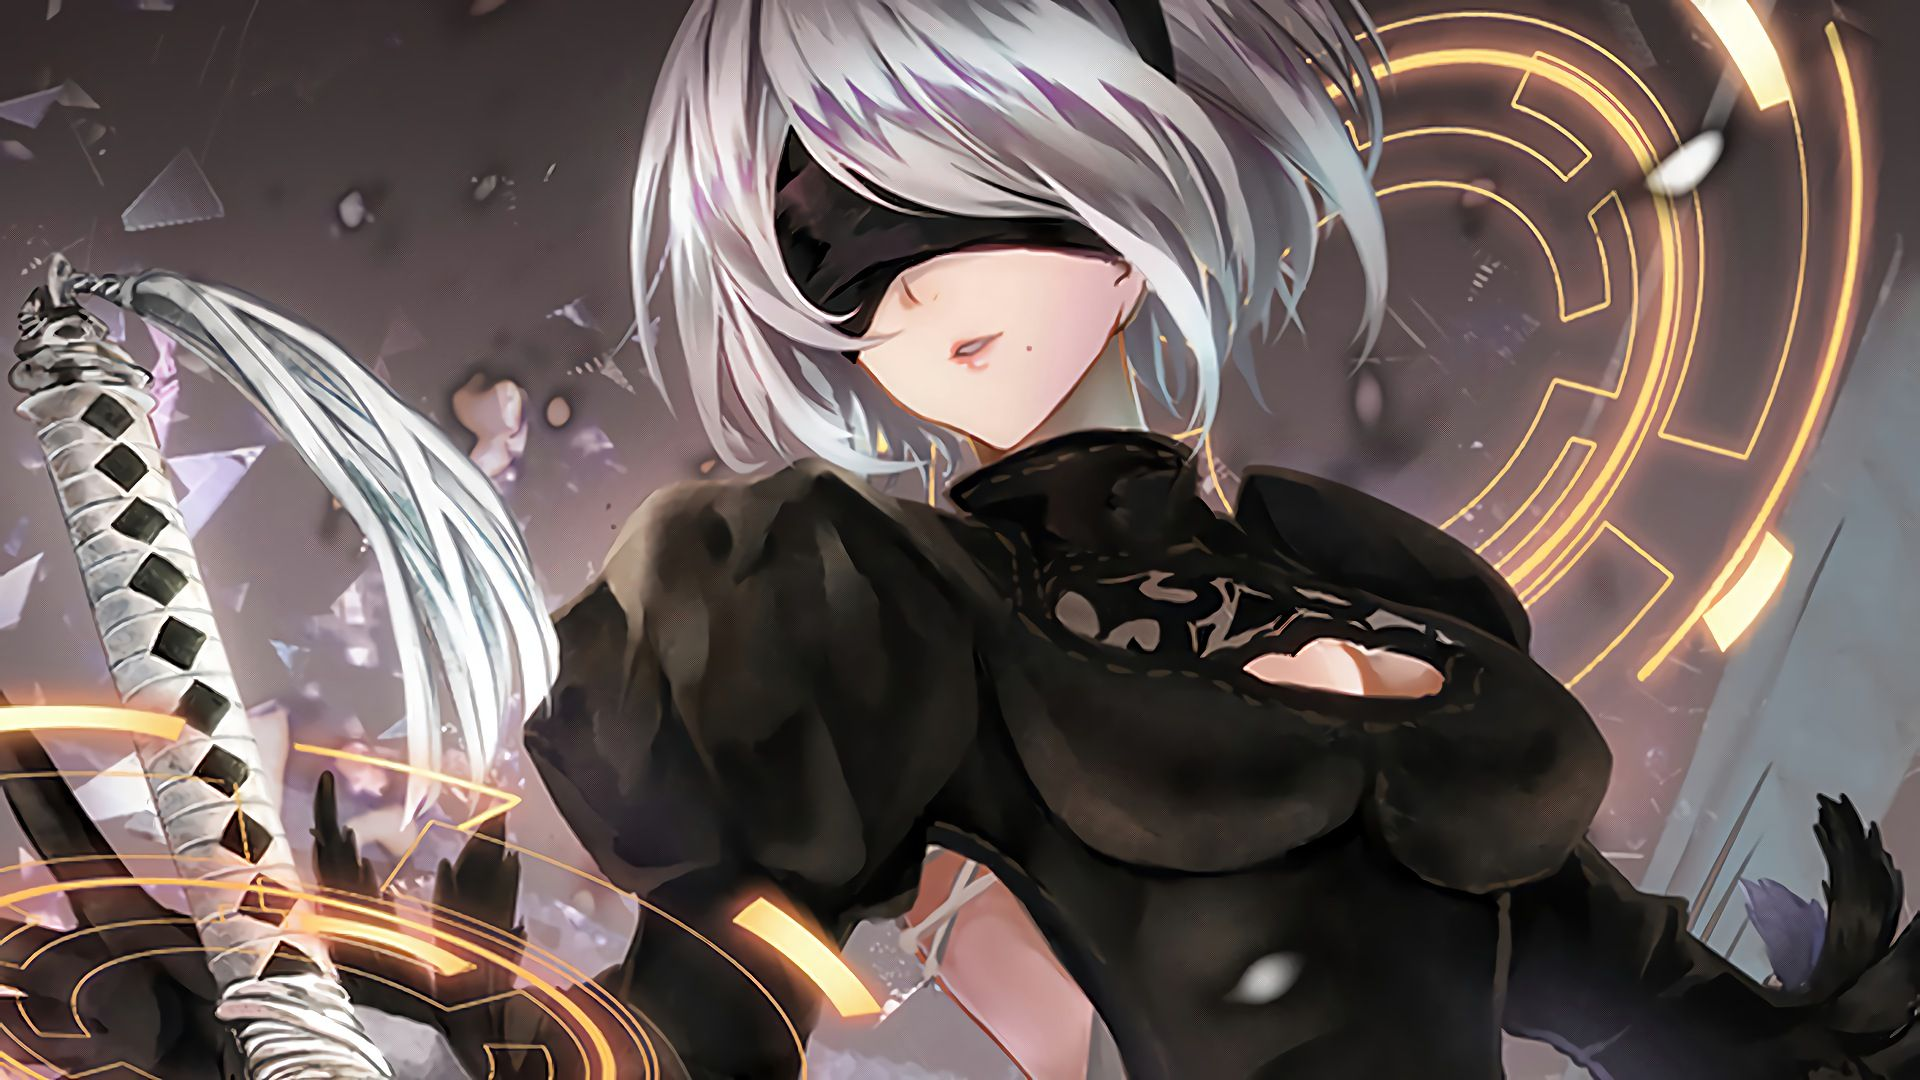 Nier Automata Wallpaper Anime